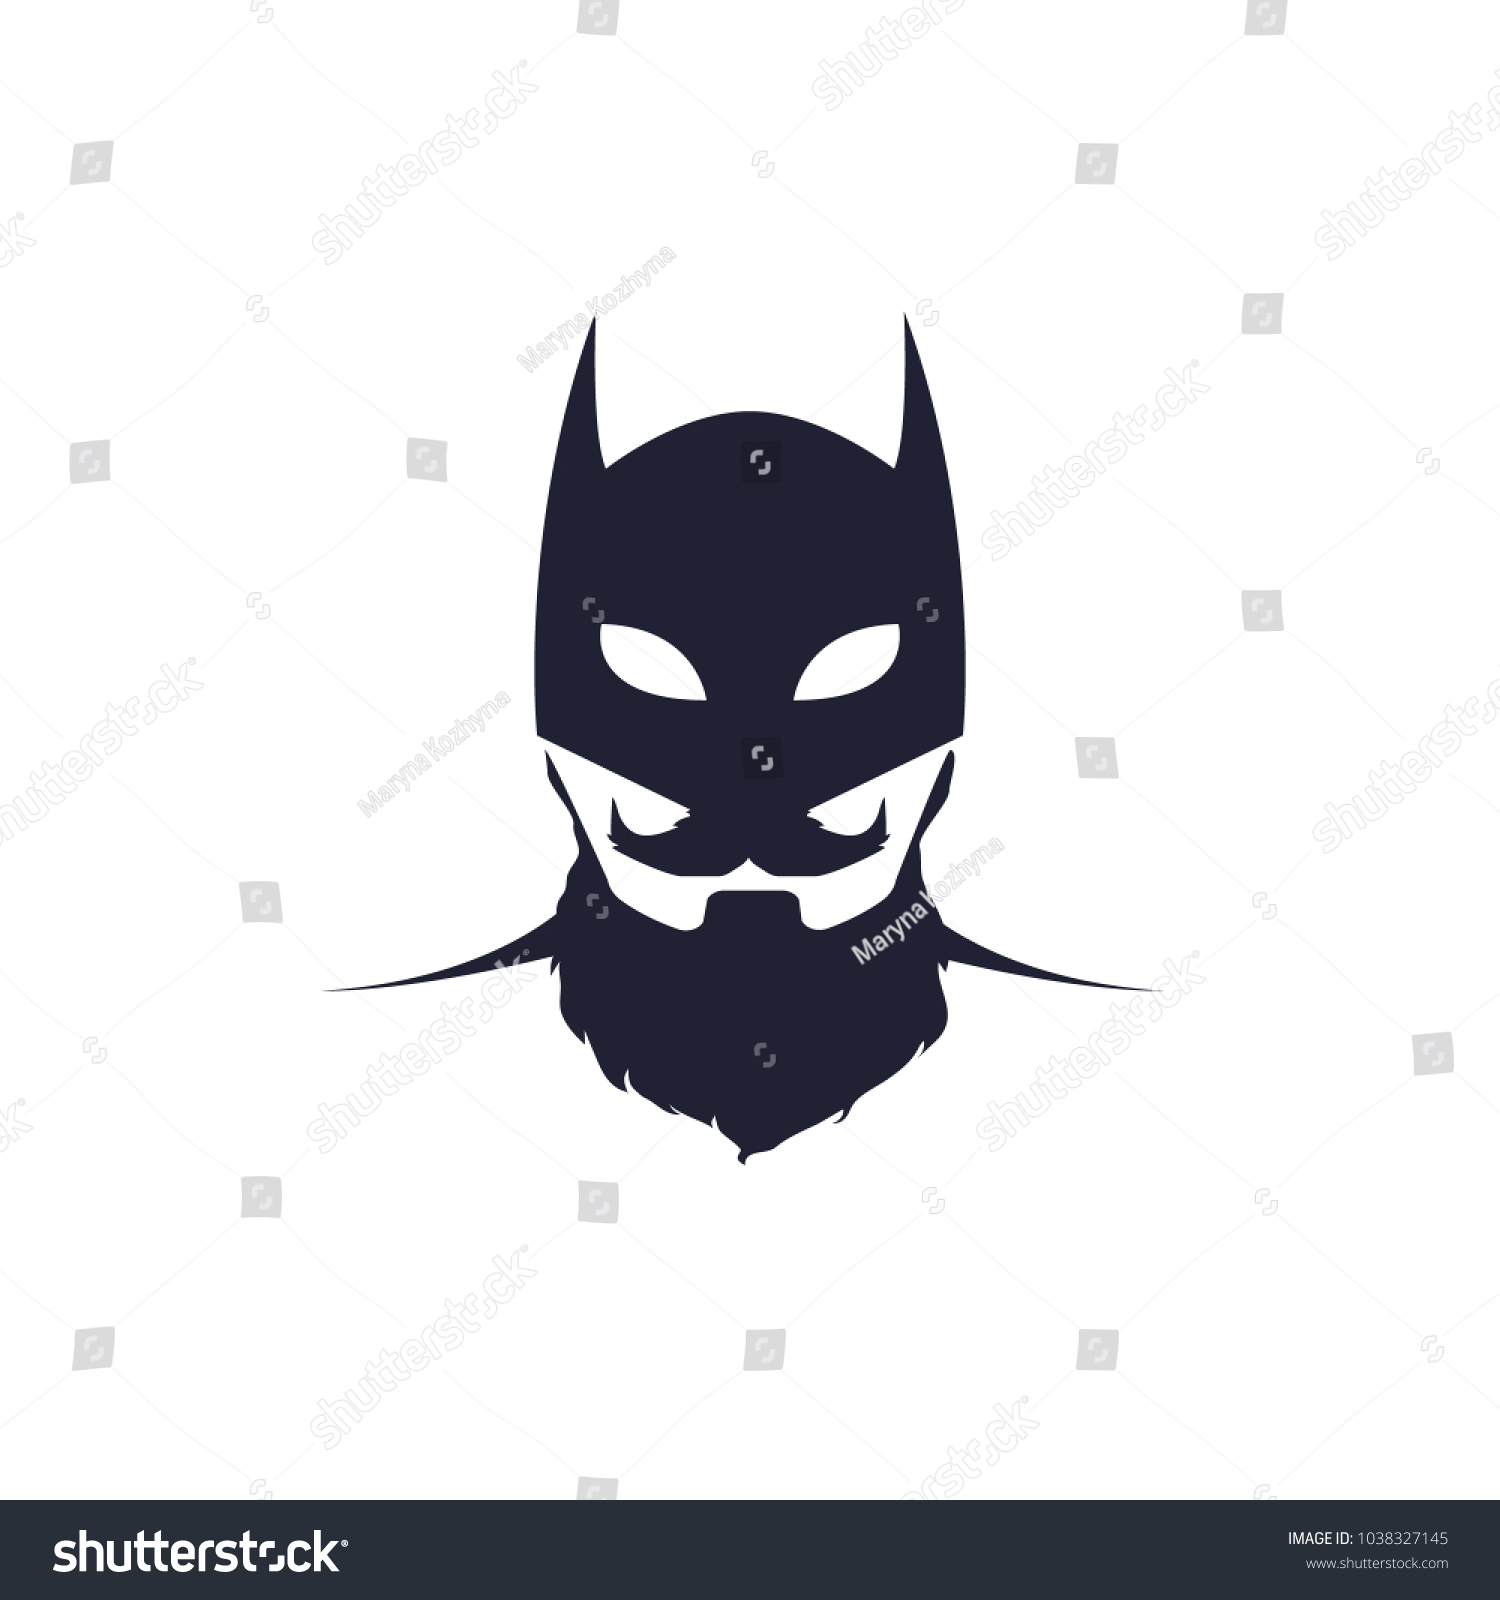 batman black mask logo halloween mask stock vector (royalty free